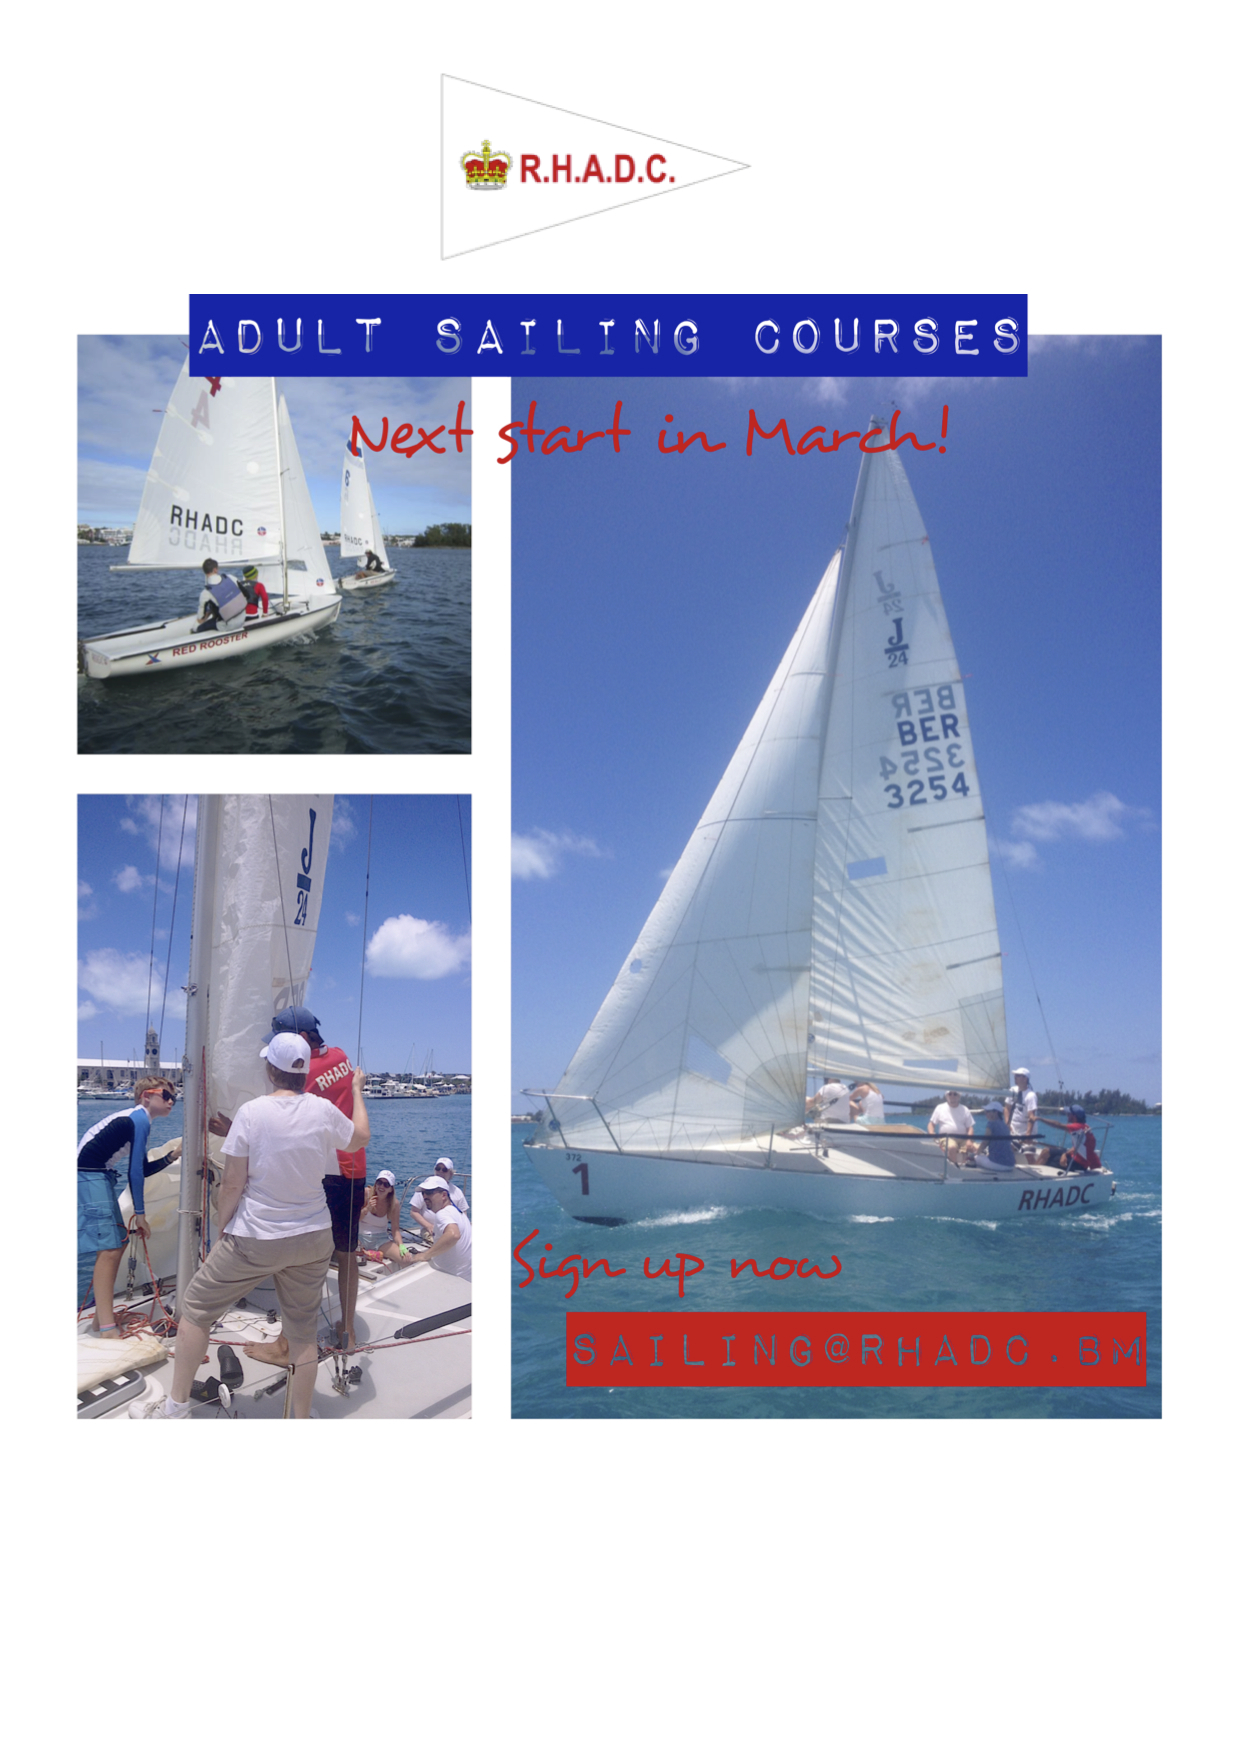 Adult Sailing Flyer March 2 jpg